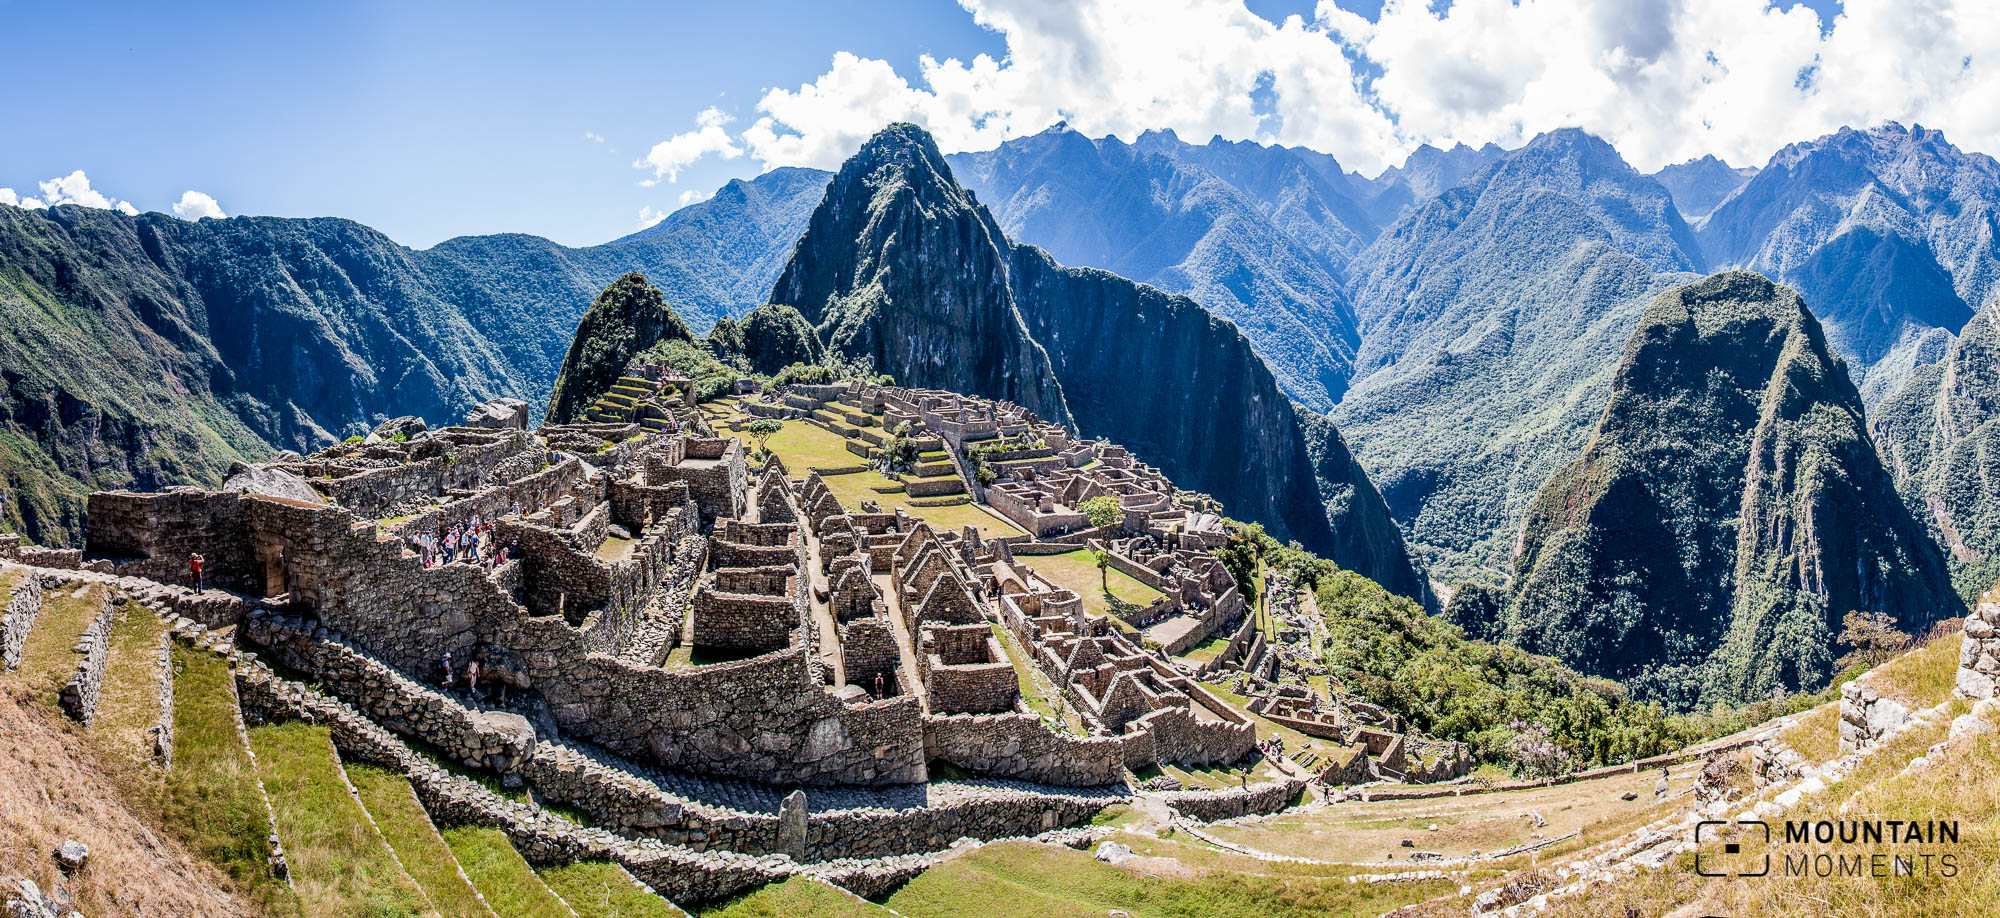 machu picchu, peru, fotokritik, machu picchu panorama, macchu picchu, travel travel photography, photo critic